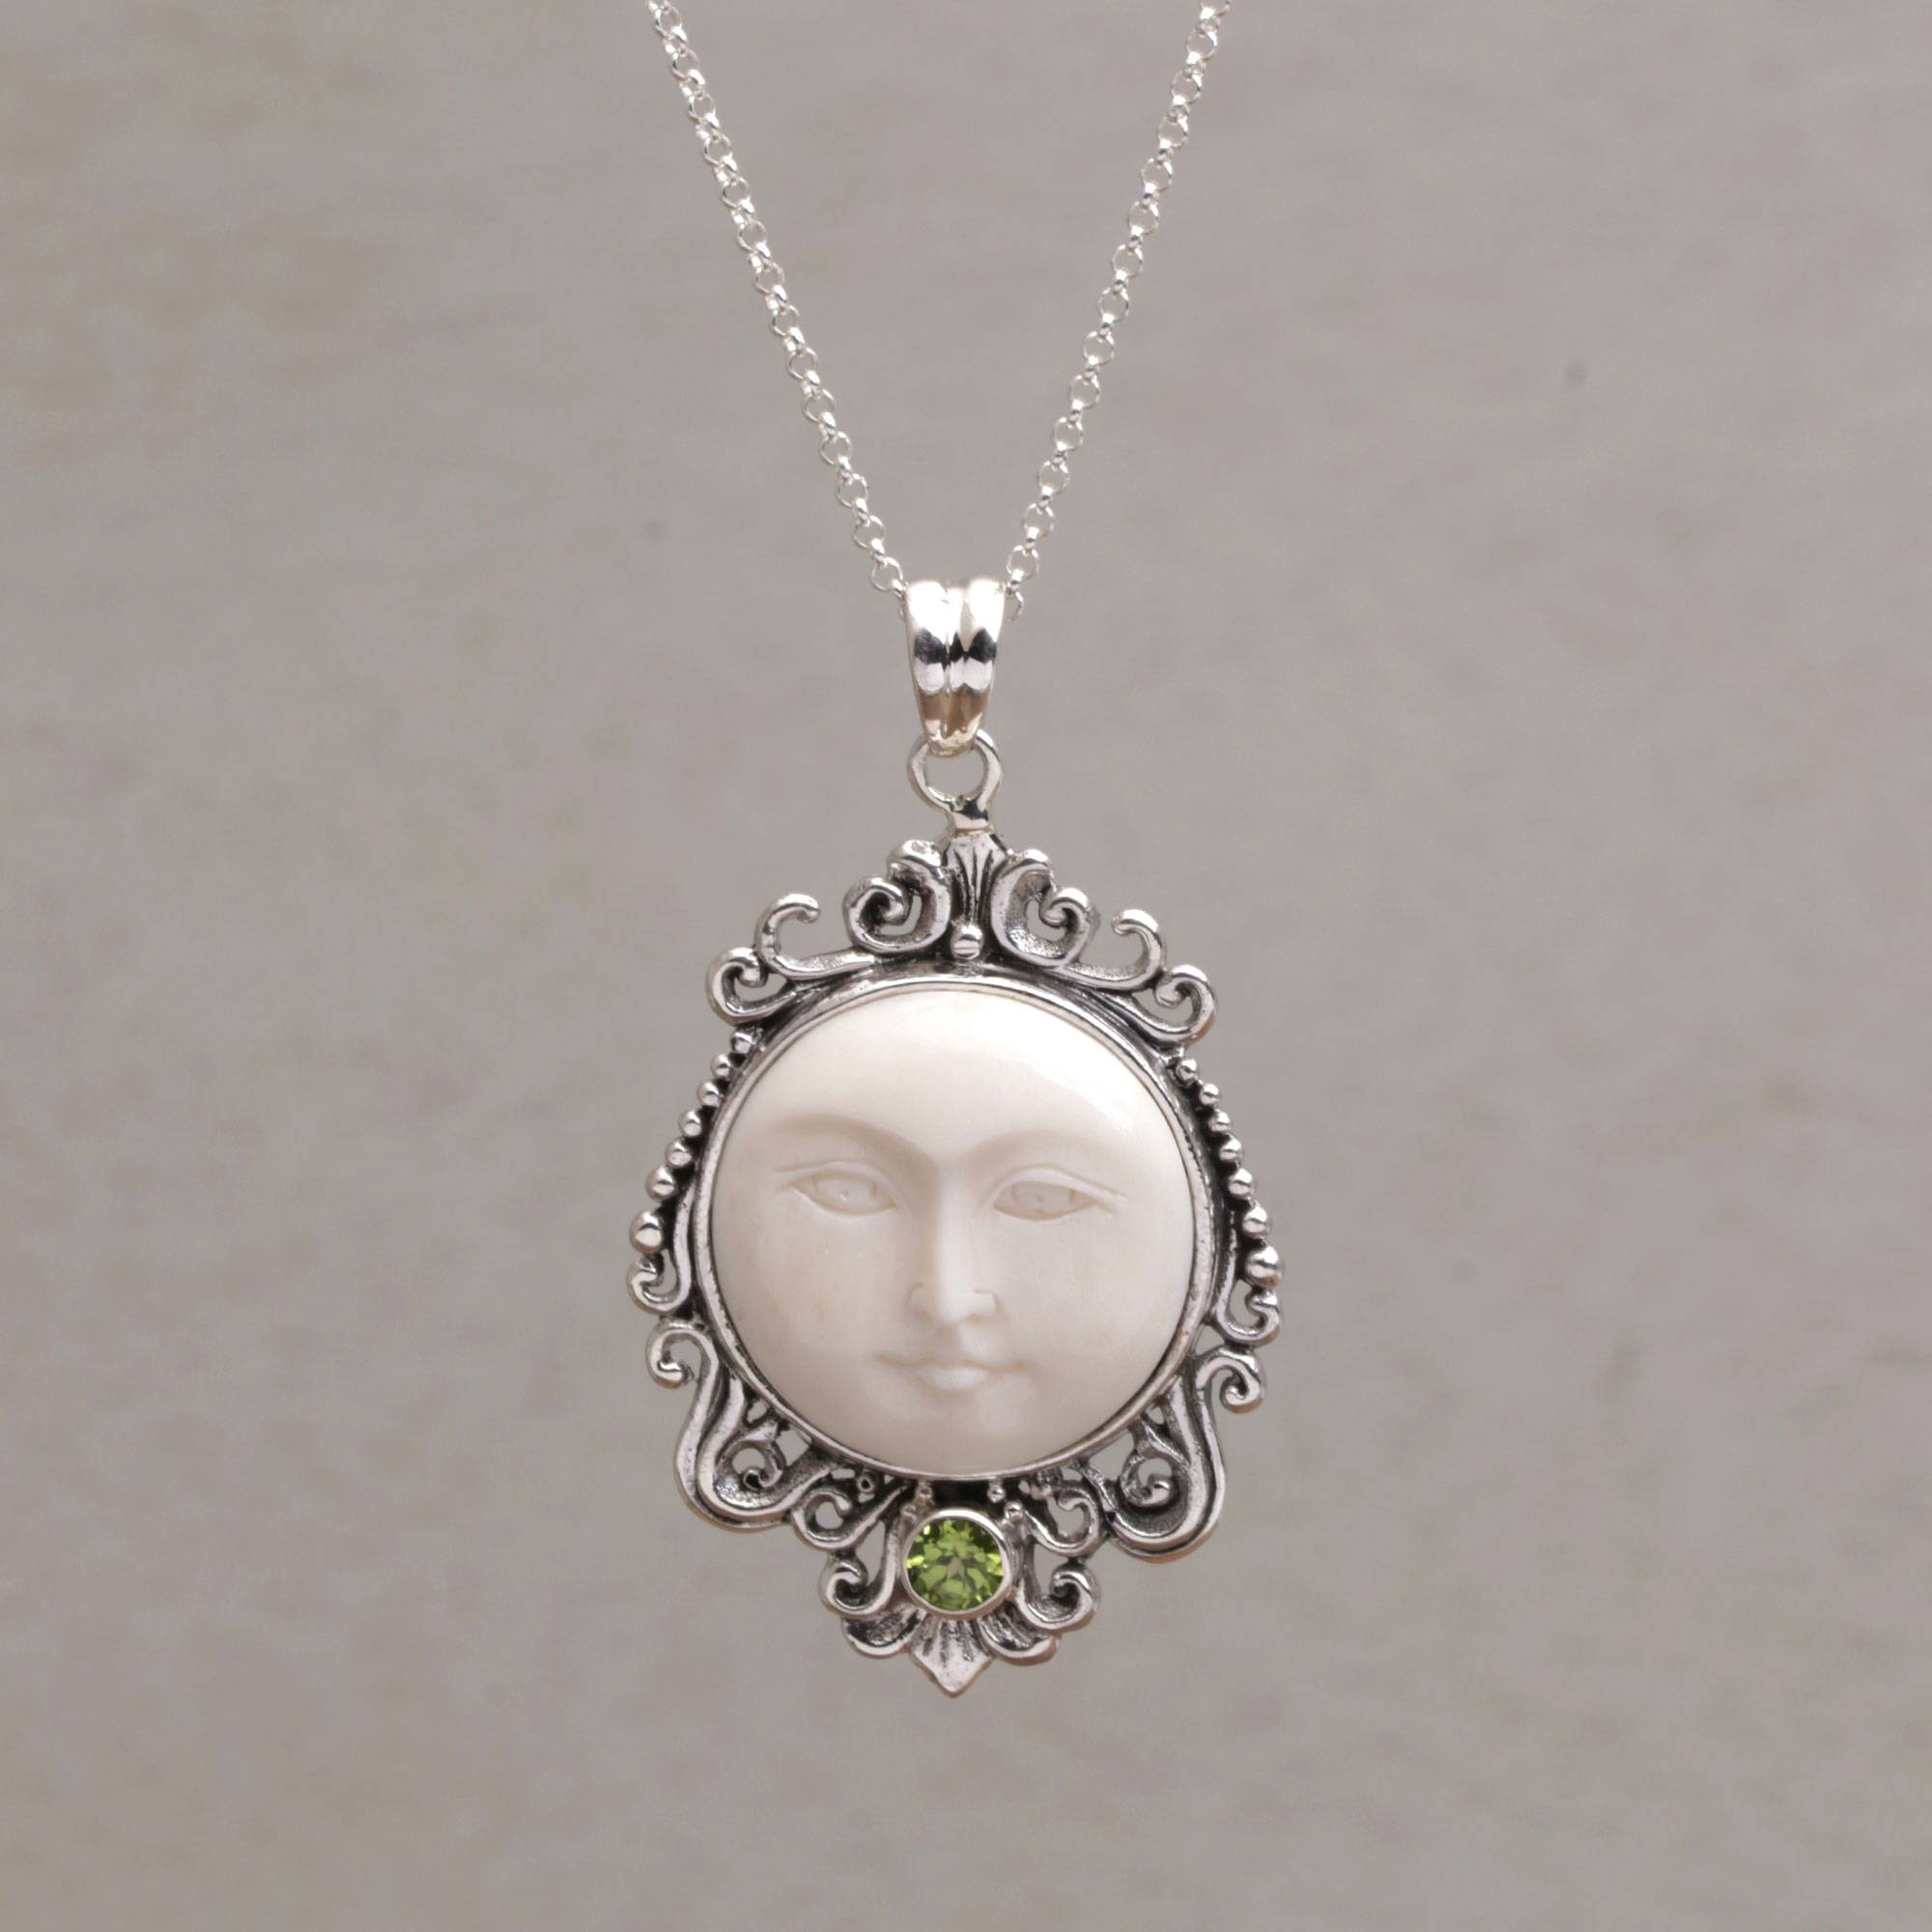 Peridot And Bone Moon Pendant Necklace From Bali Moonlight Stare Novica